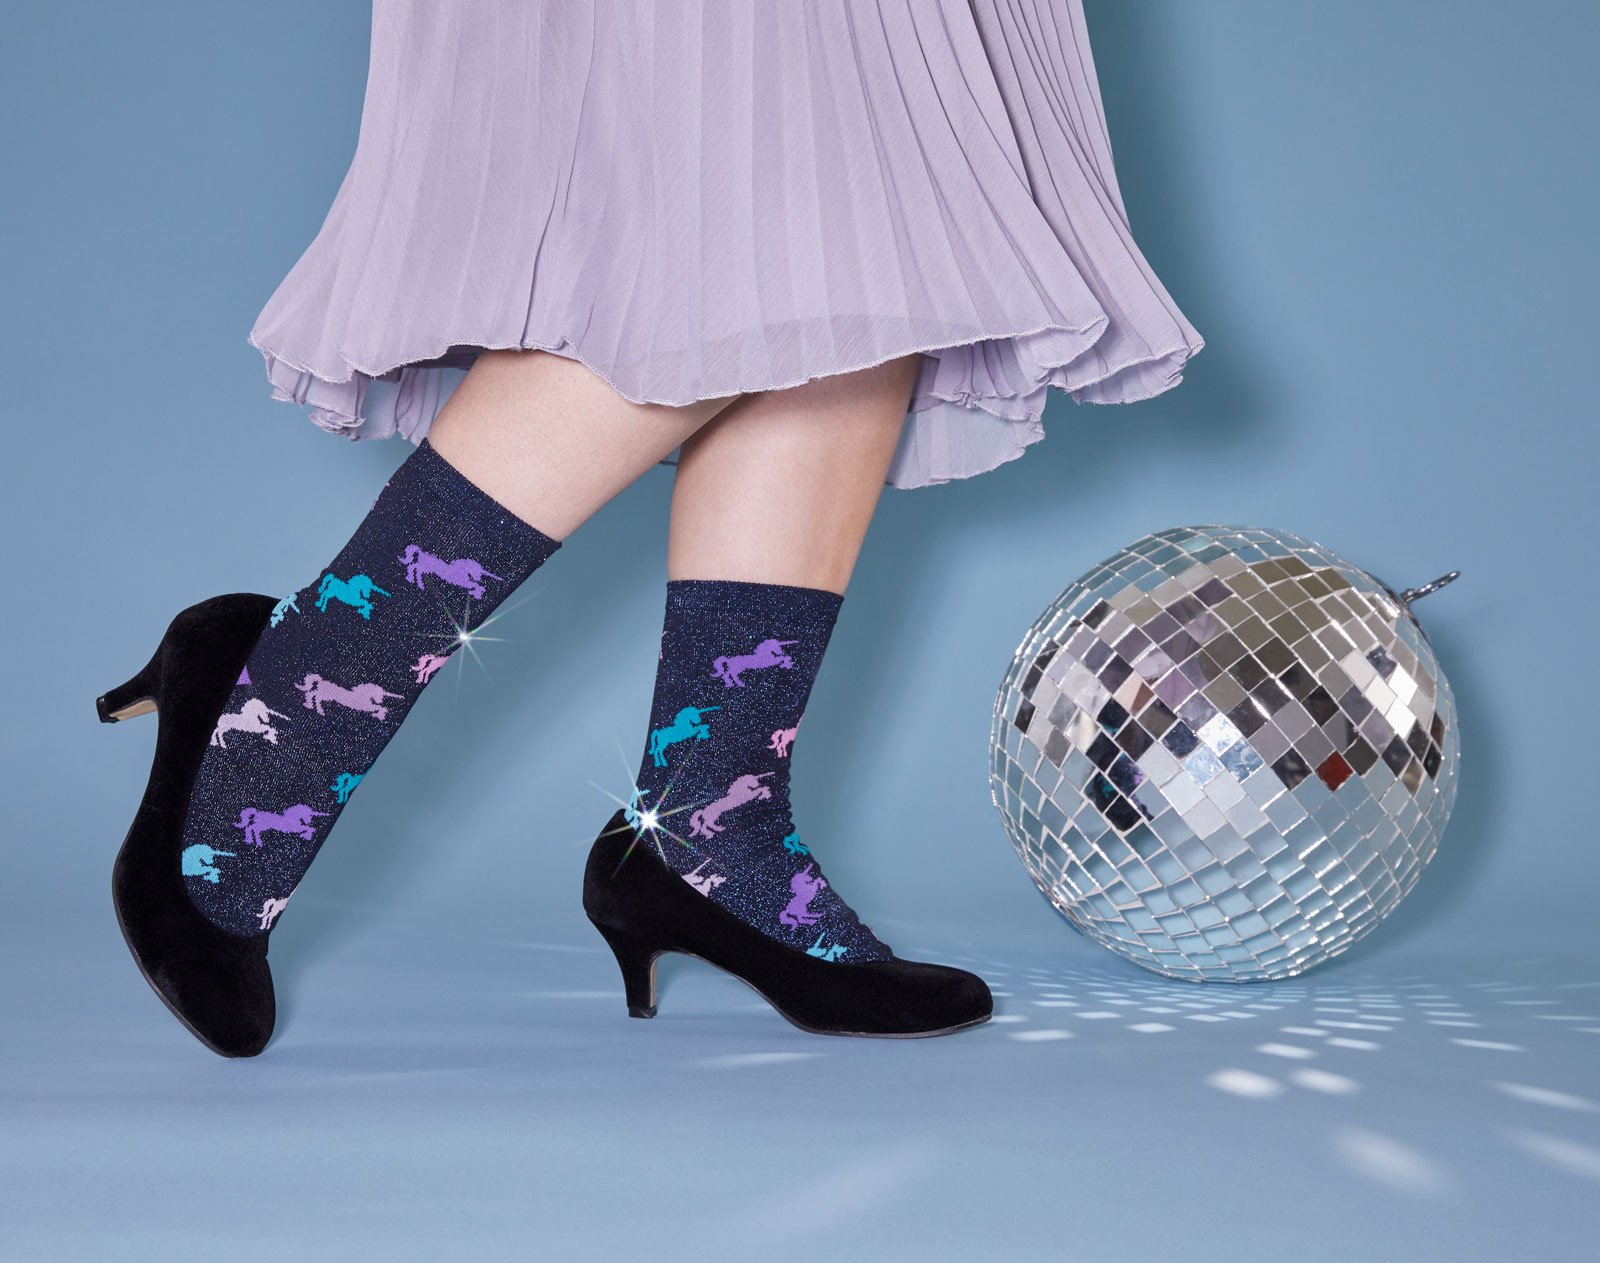 shimmering socks with multicolored unicorns